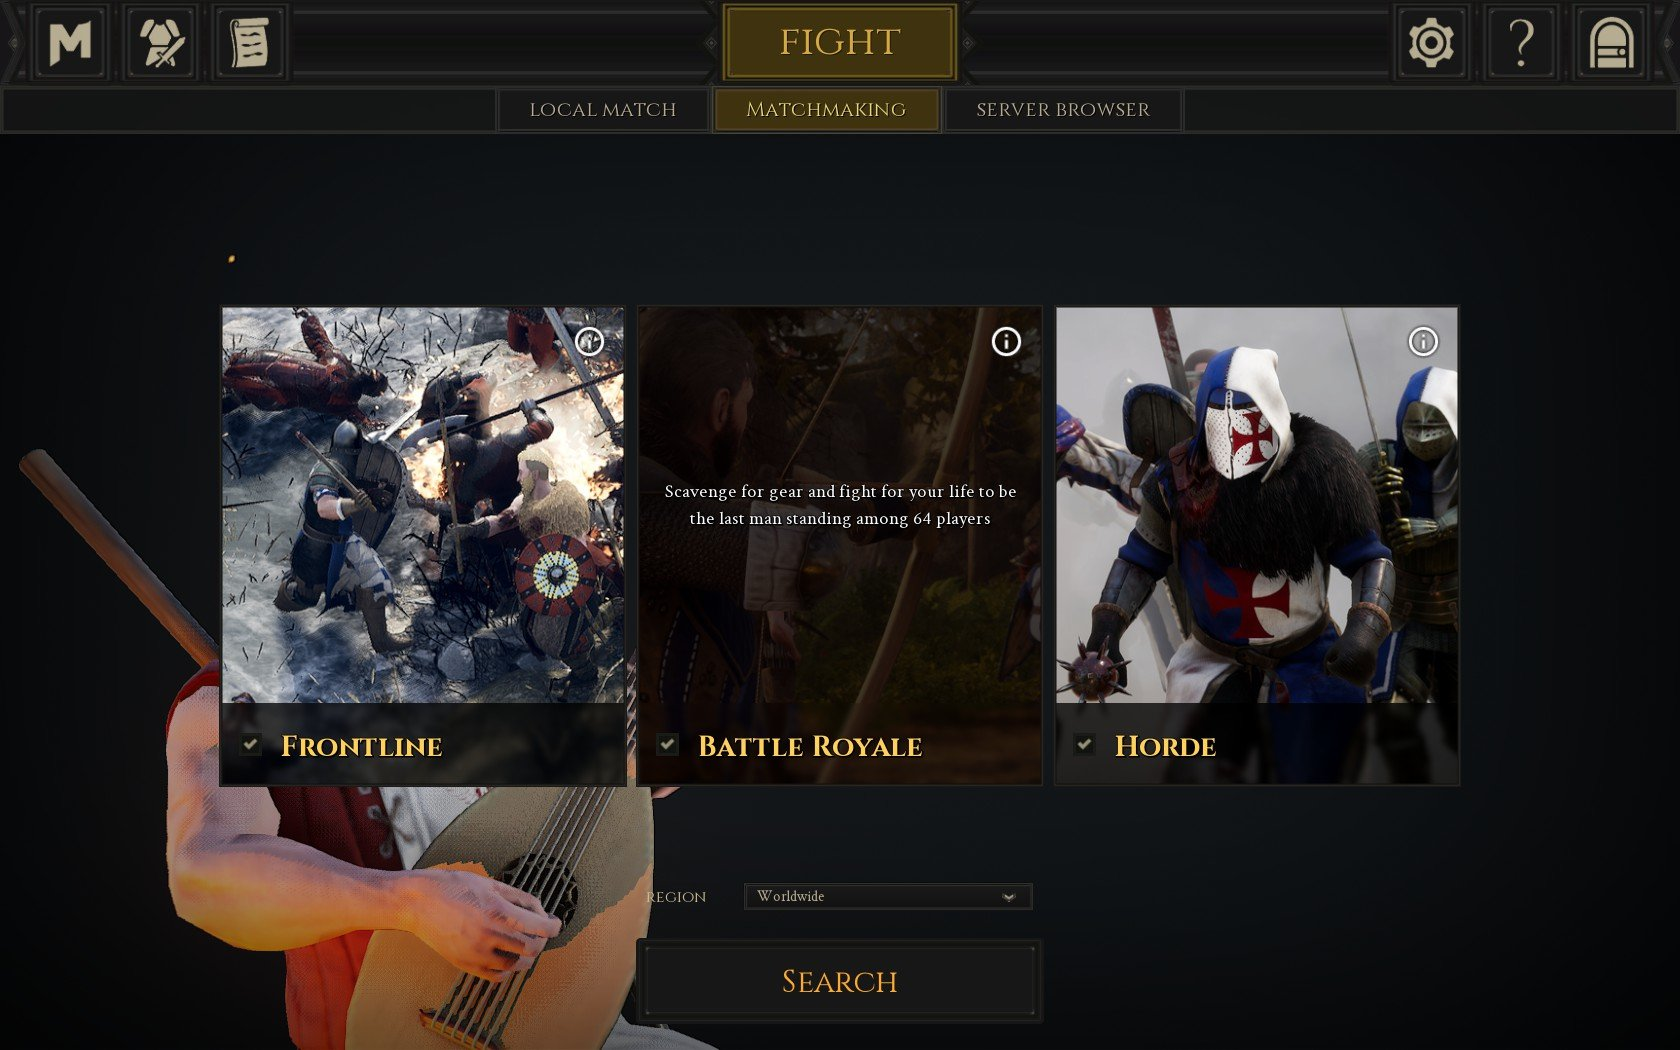 The Battle Royale game mode works similarly to other Battle Royale games in that 64 players will fight to become the last player standing in Mordhau.